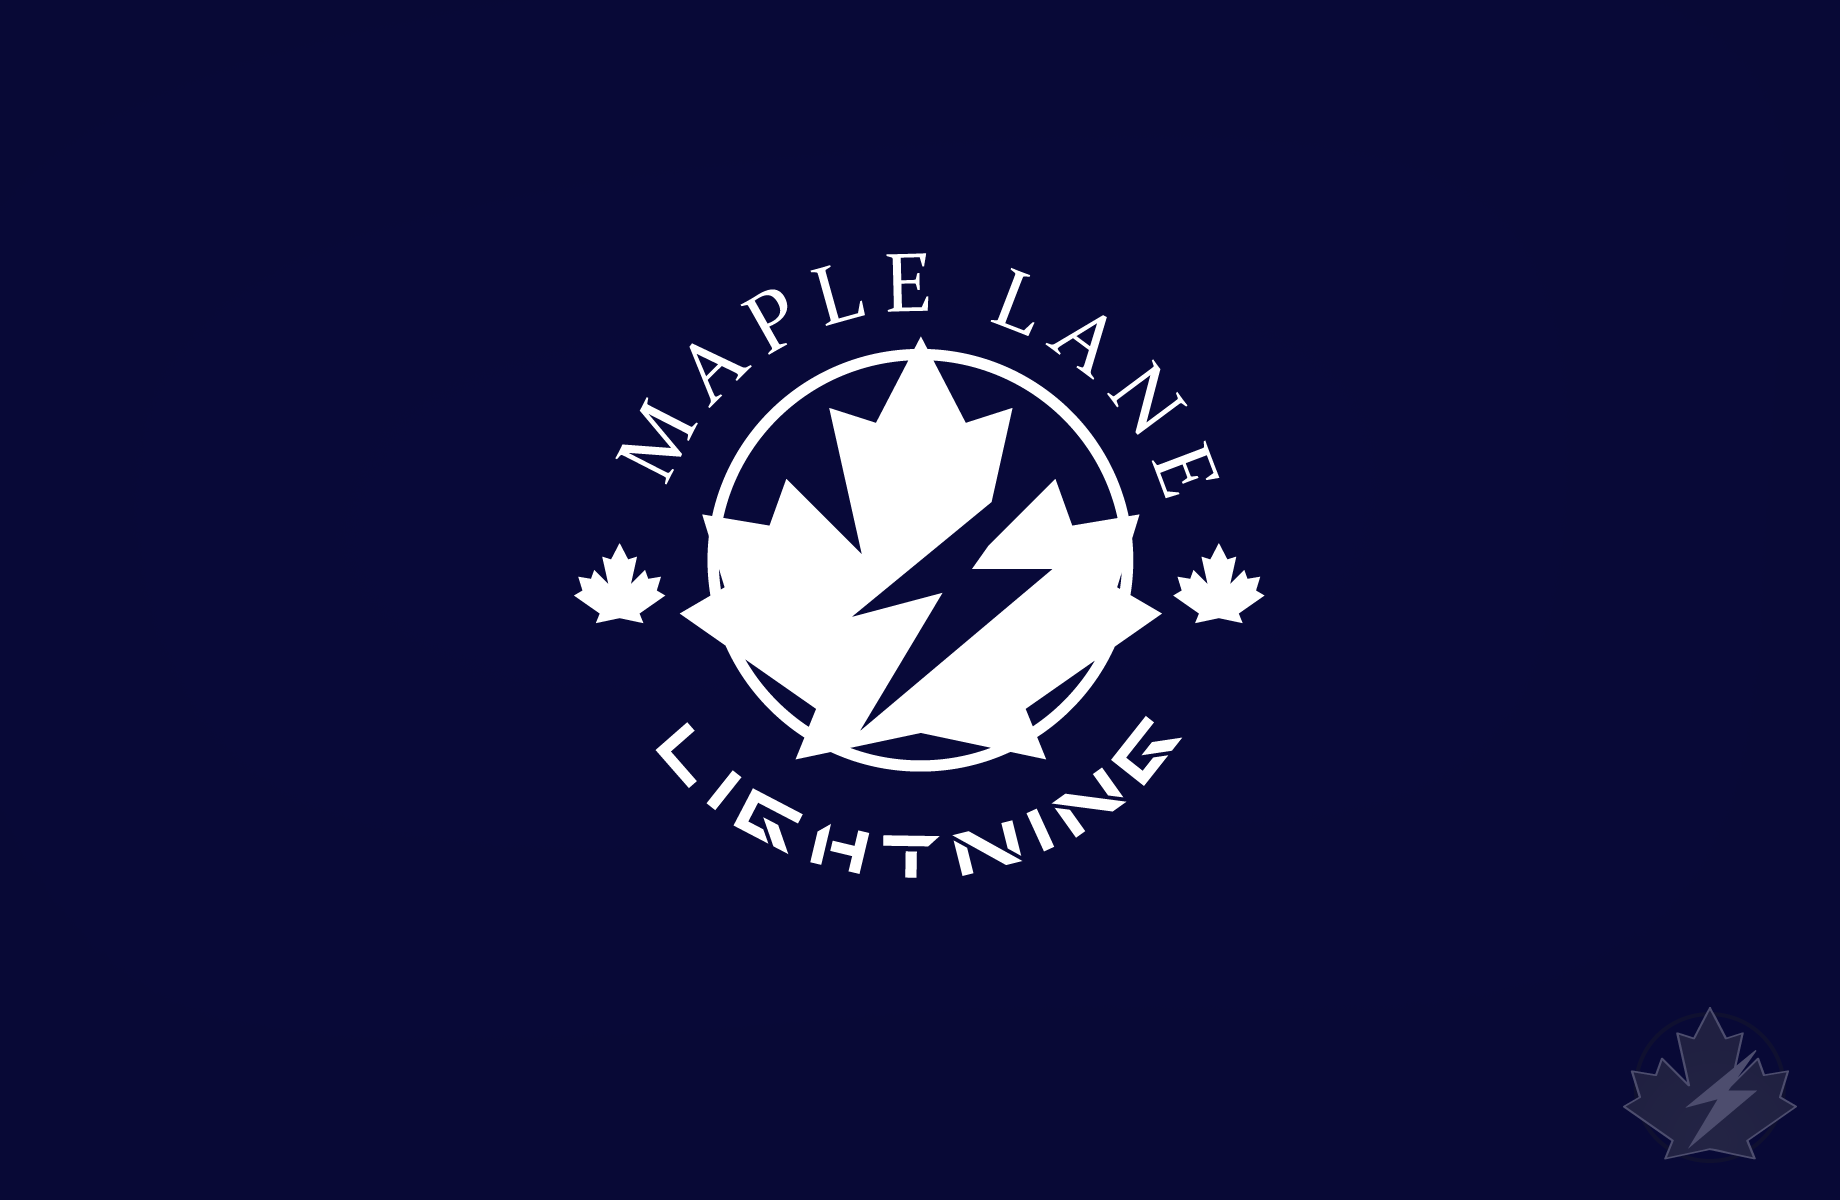 Logo Design by Jan Chua - Entry No. 99 in the Logo Design Contest Maple Lane Logo Design.